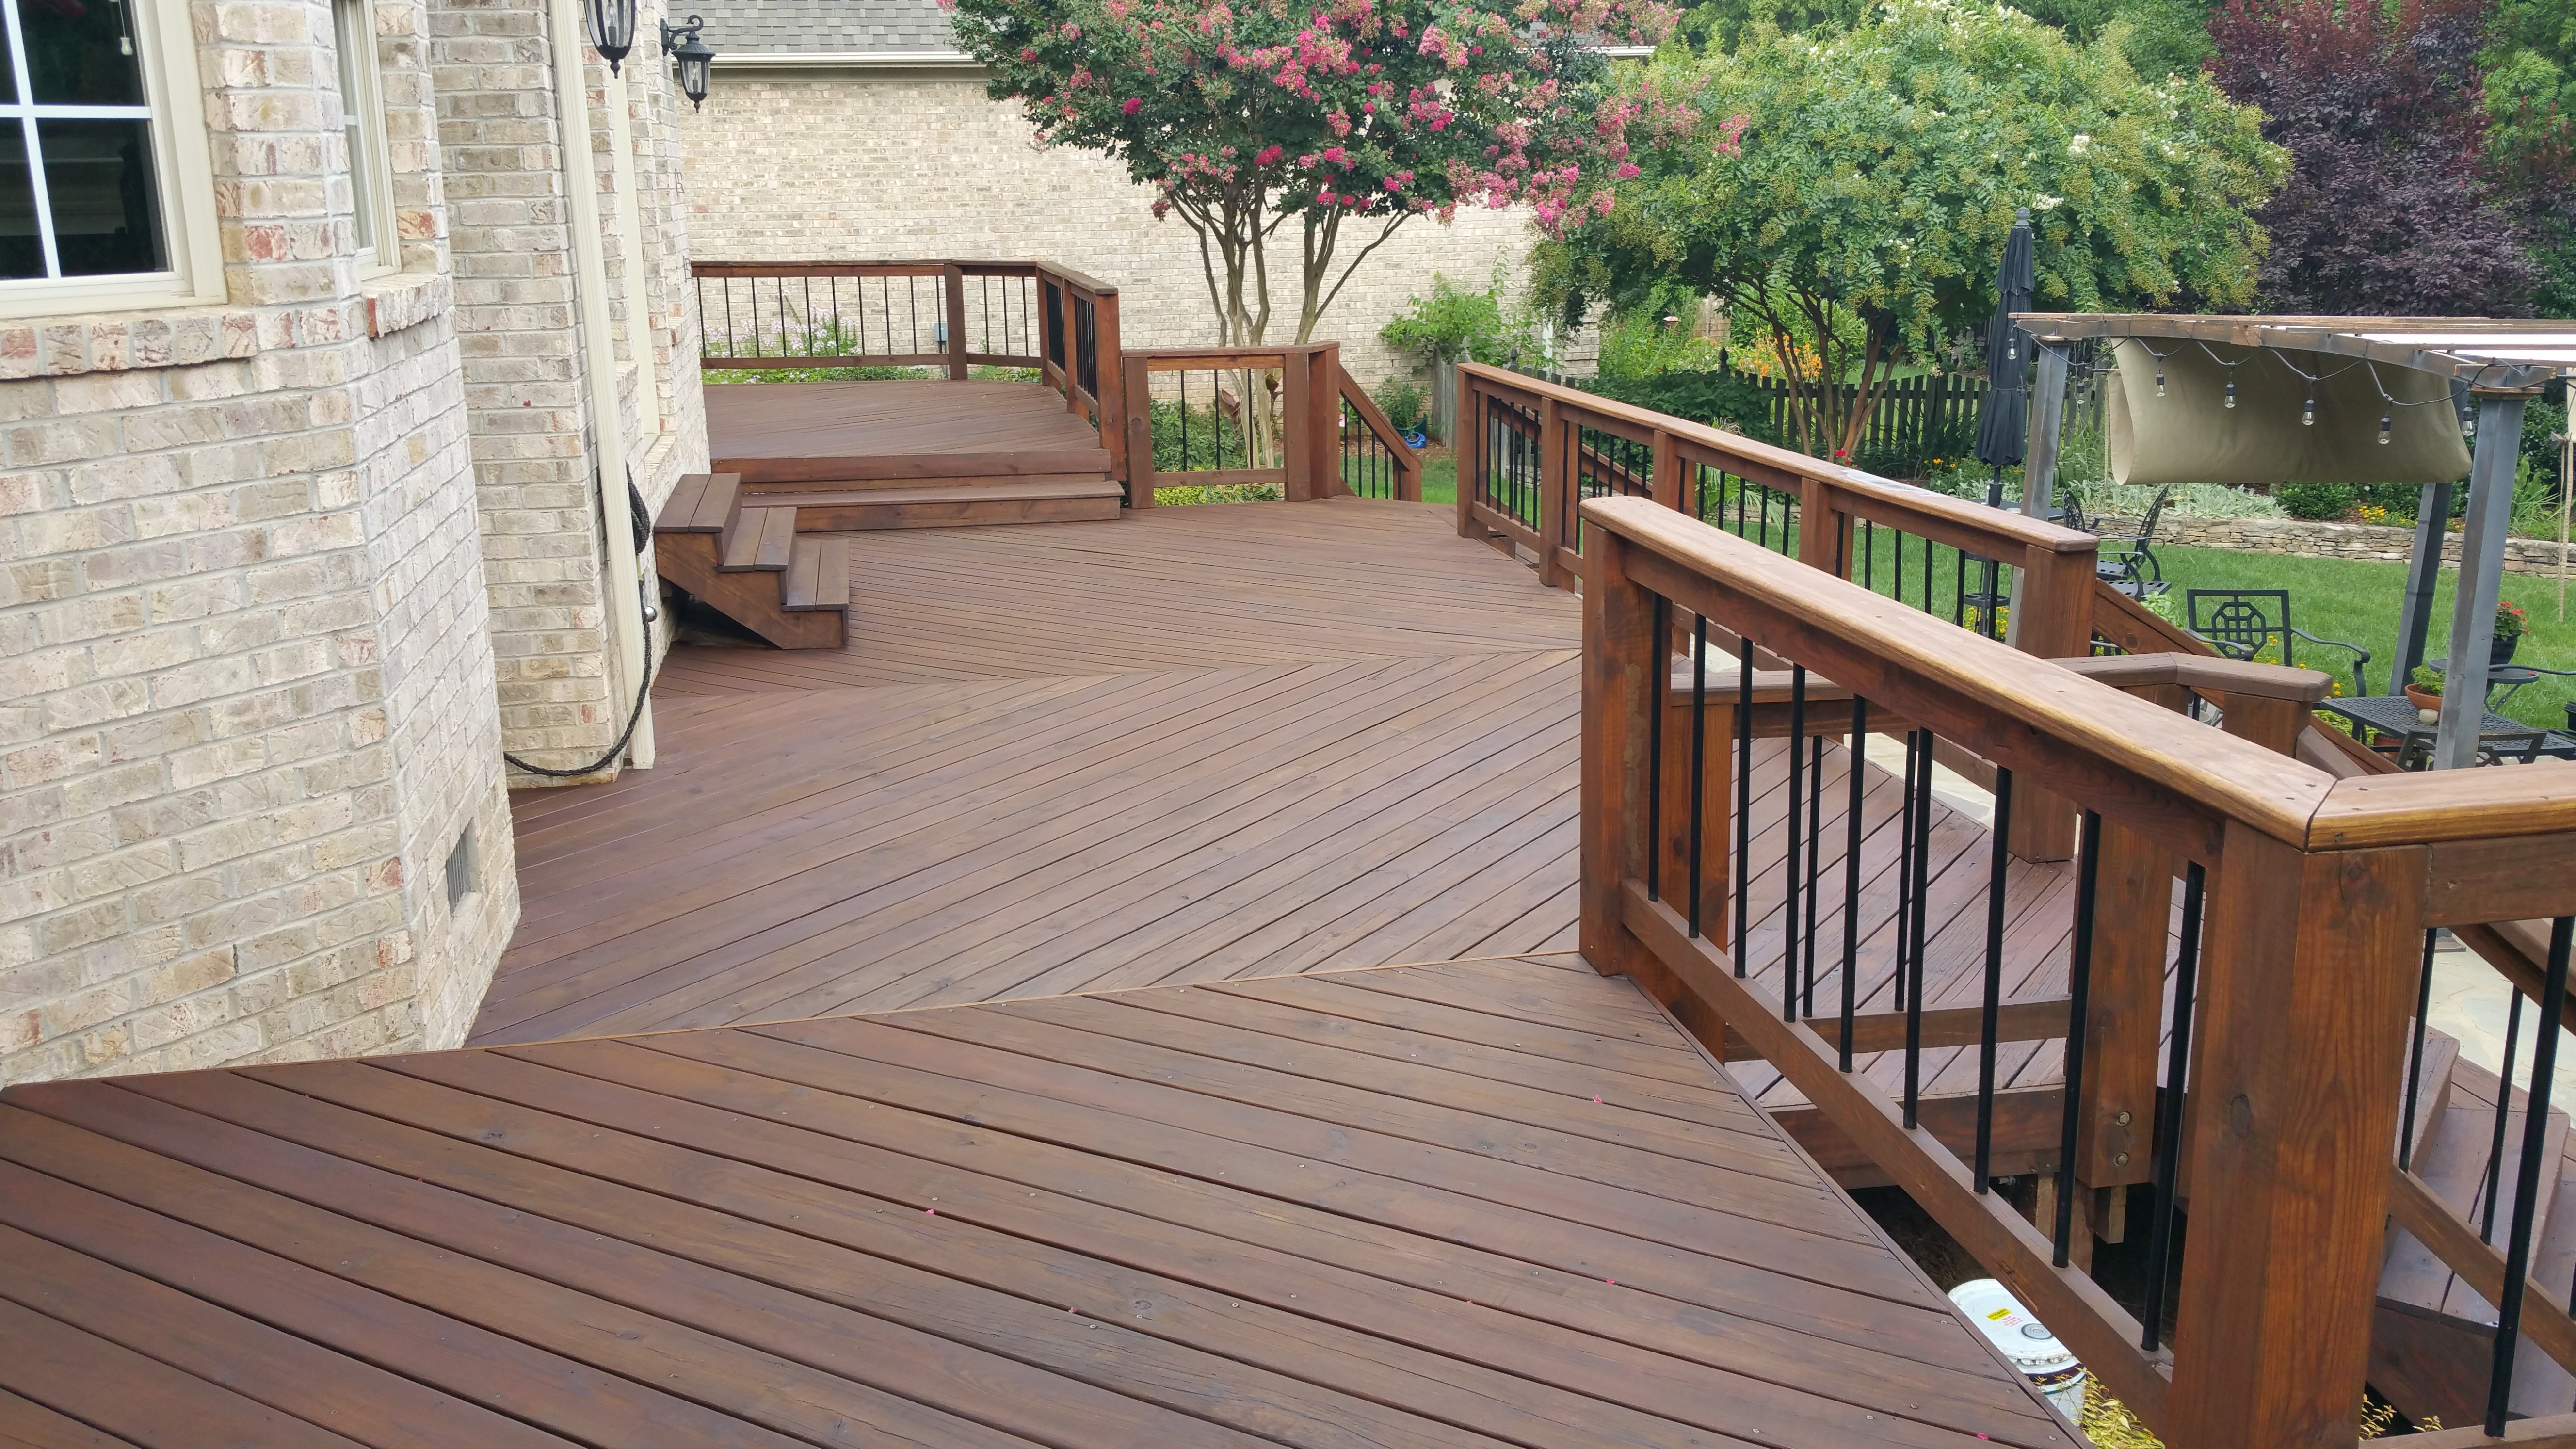 Deck Stained With Armstrong Clark Semi Transpa Oil Based